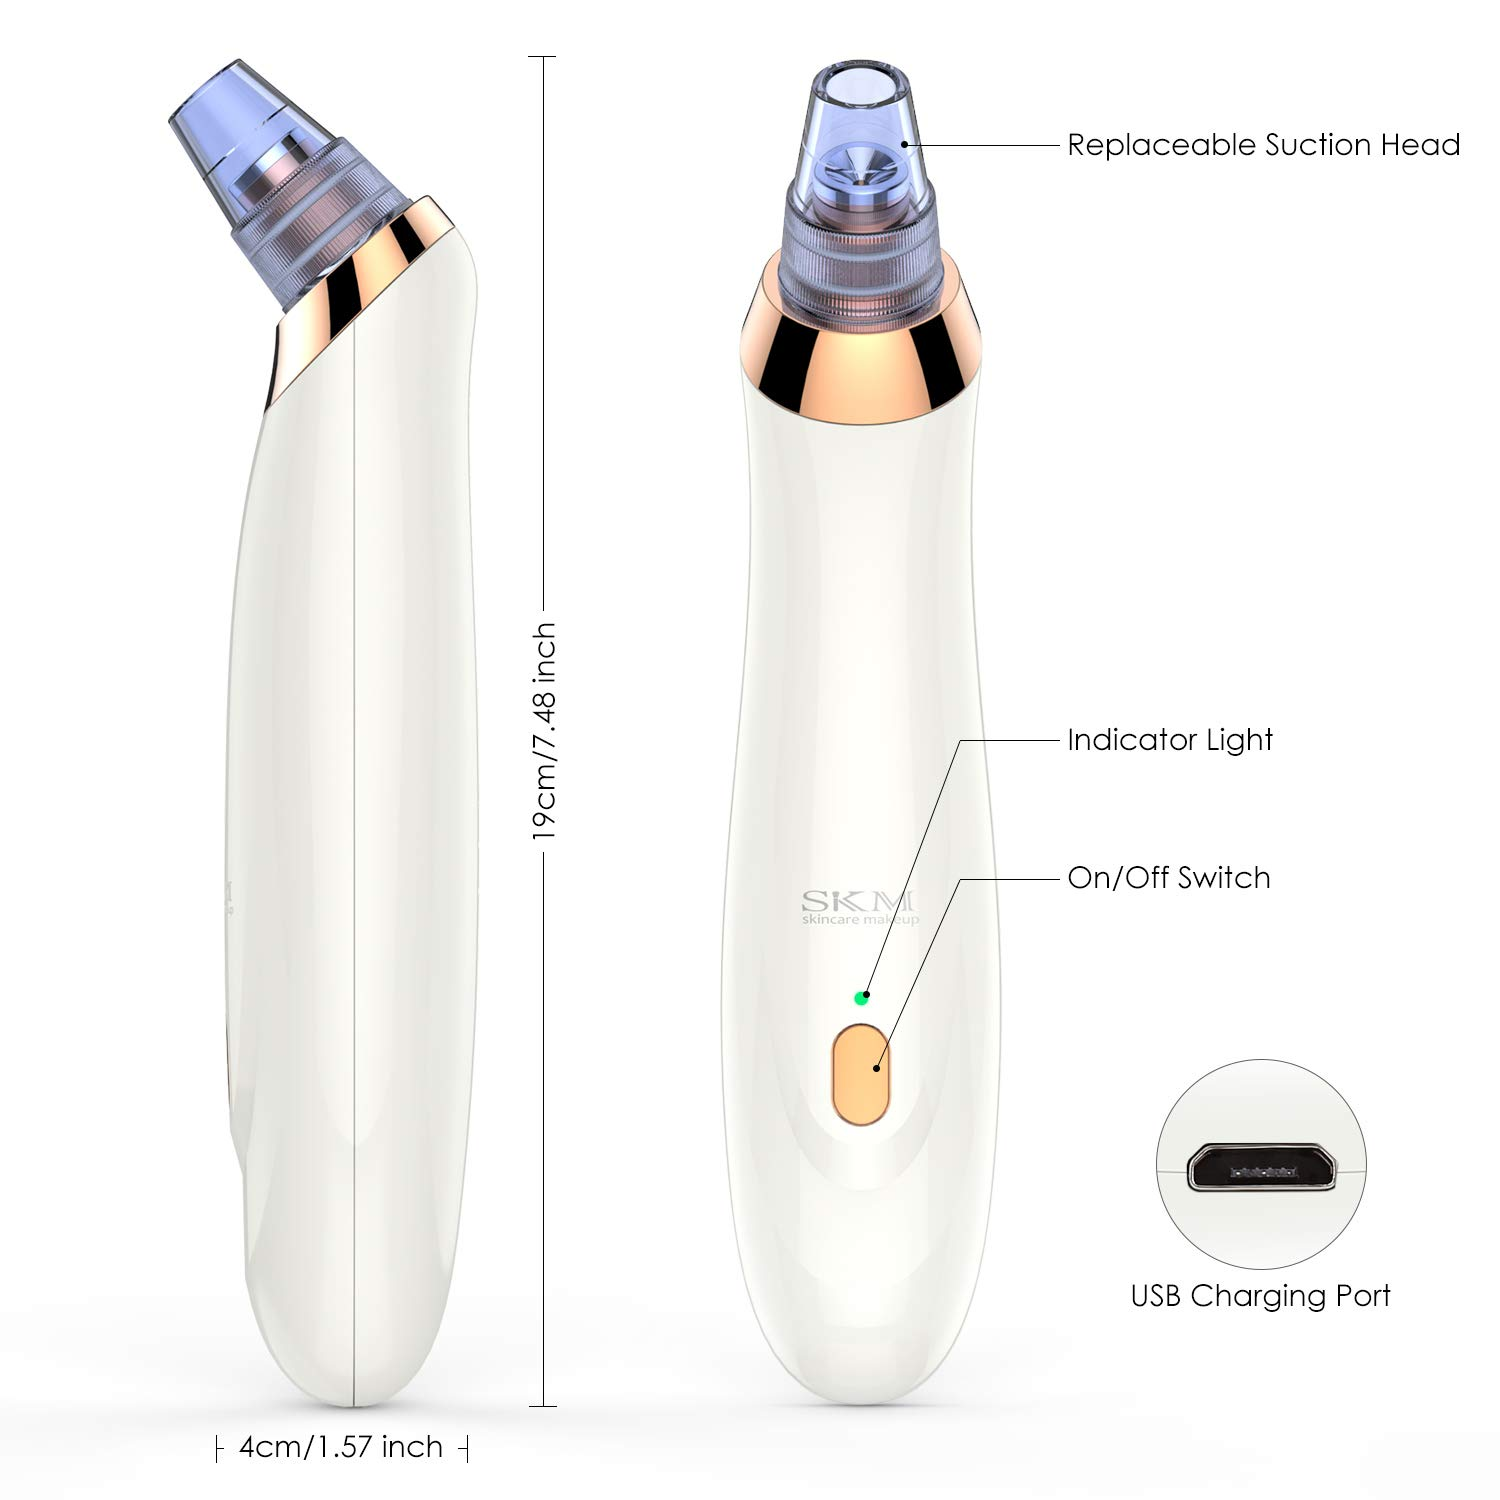 Blackhead Remover Vacuum, Electric Facial Pore Vacuum Cleaner, Blackhead Extractor, with 5 Suction Heads for Women Men Face Nose by SKM